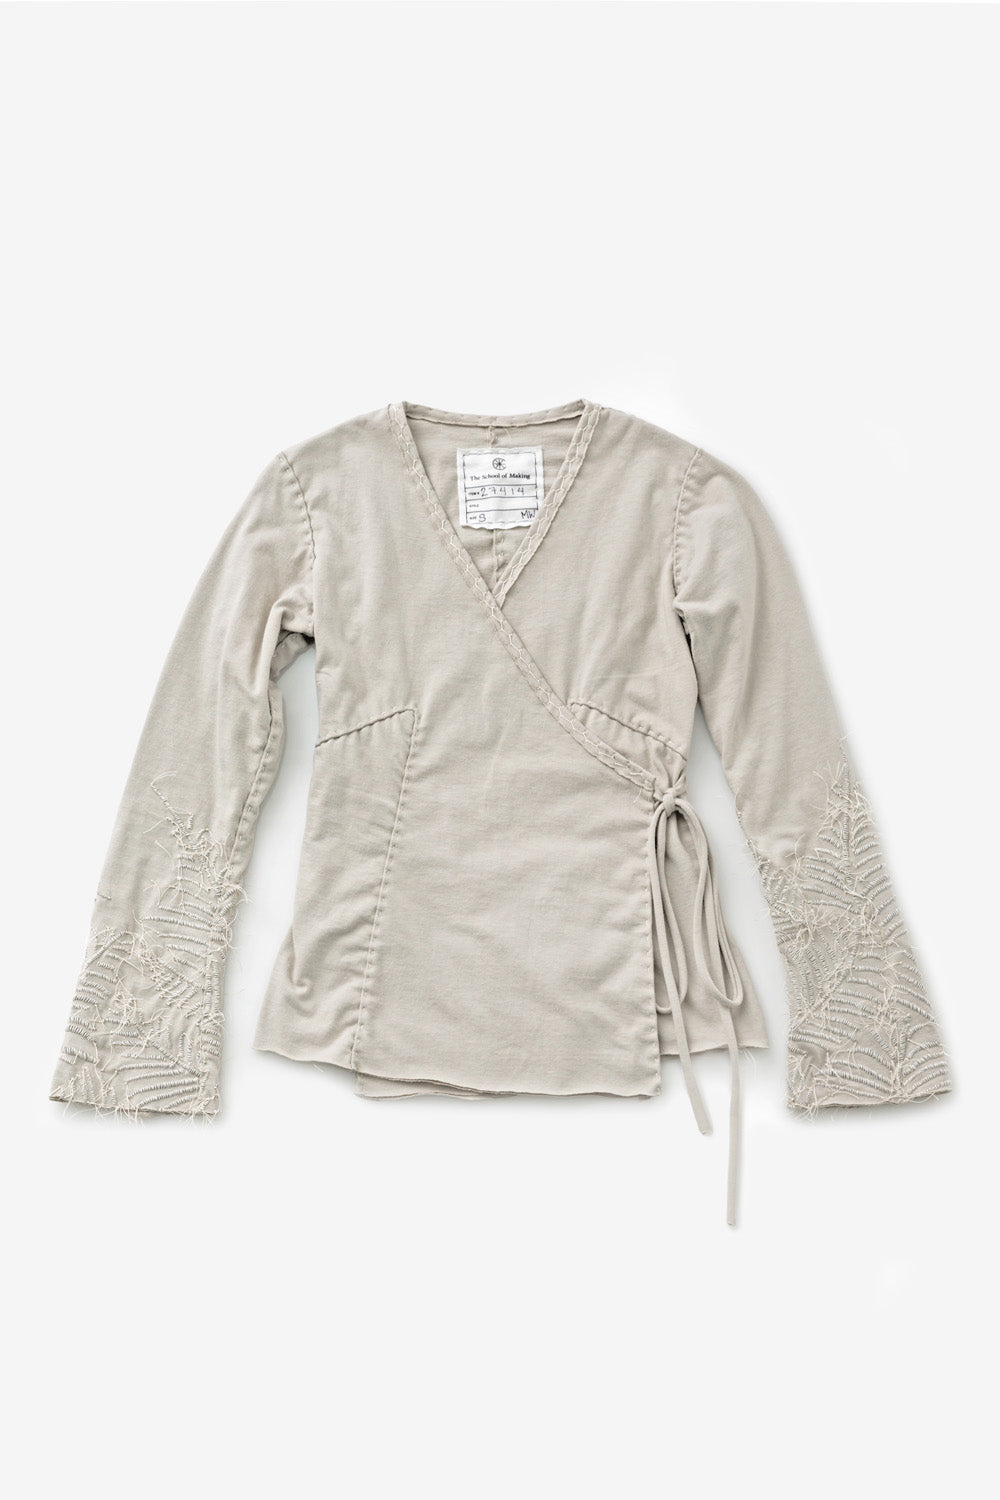 The School of Making Organic Cotton Wrap Top DIY Kit Long Sleeves Tan